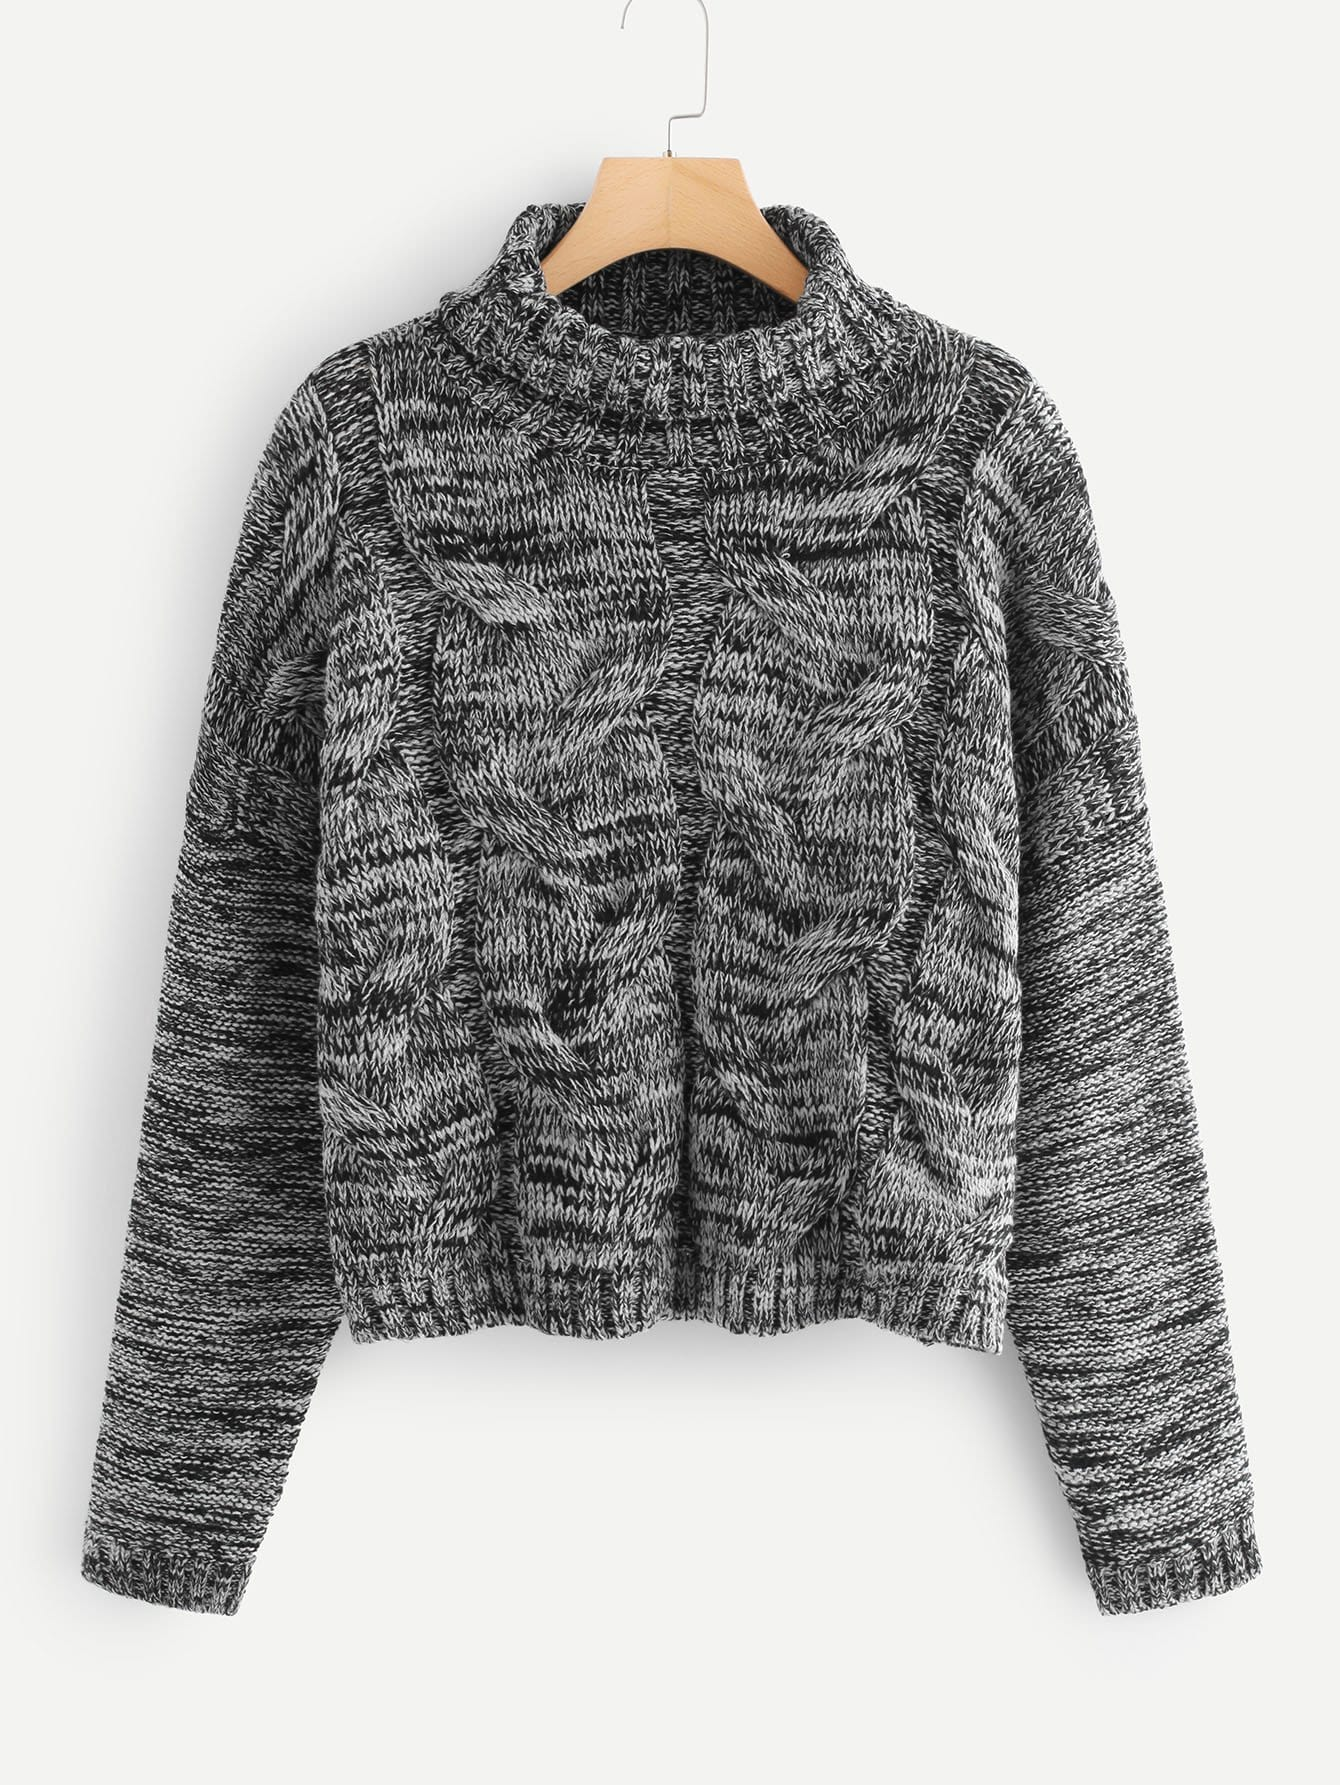 Marled Knit Cable Sweater colorblock cable knit sweater